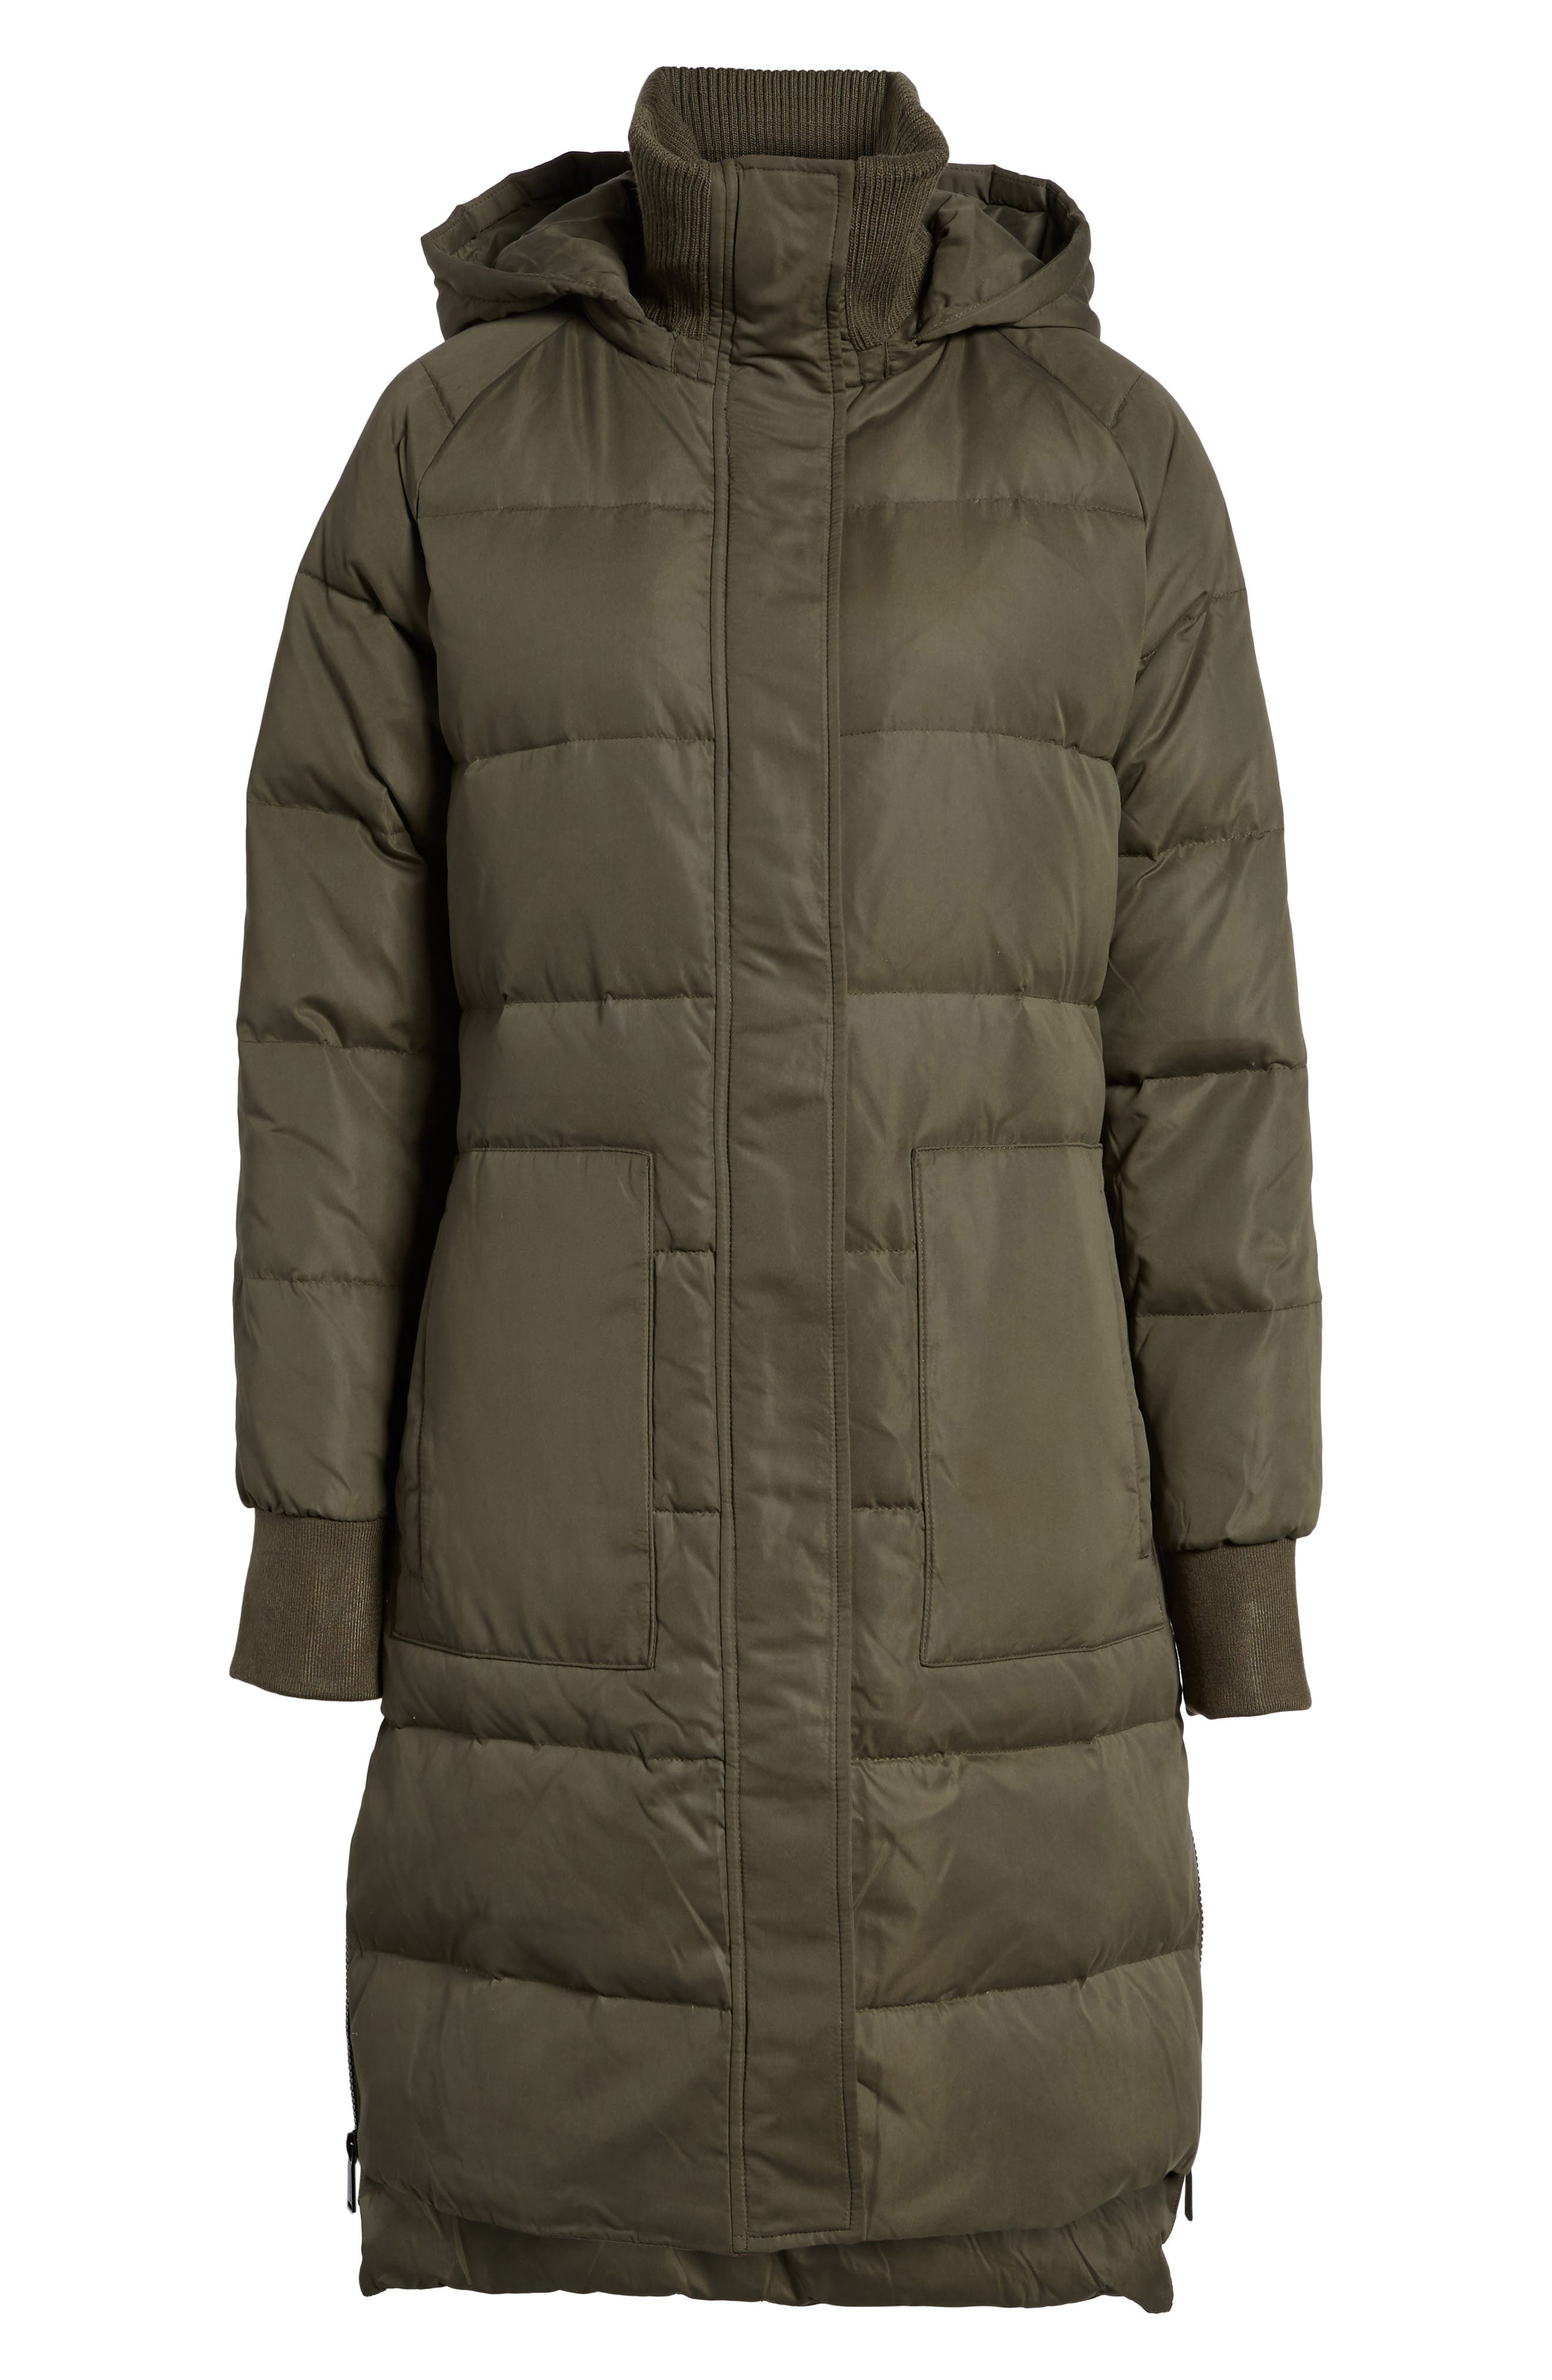 Down & Feather Fill Puffer Jacket,                         Main,                         color, Army